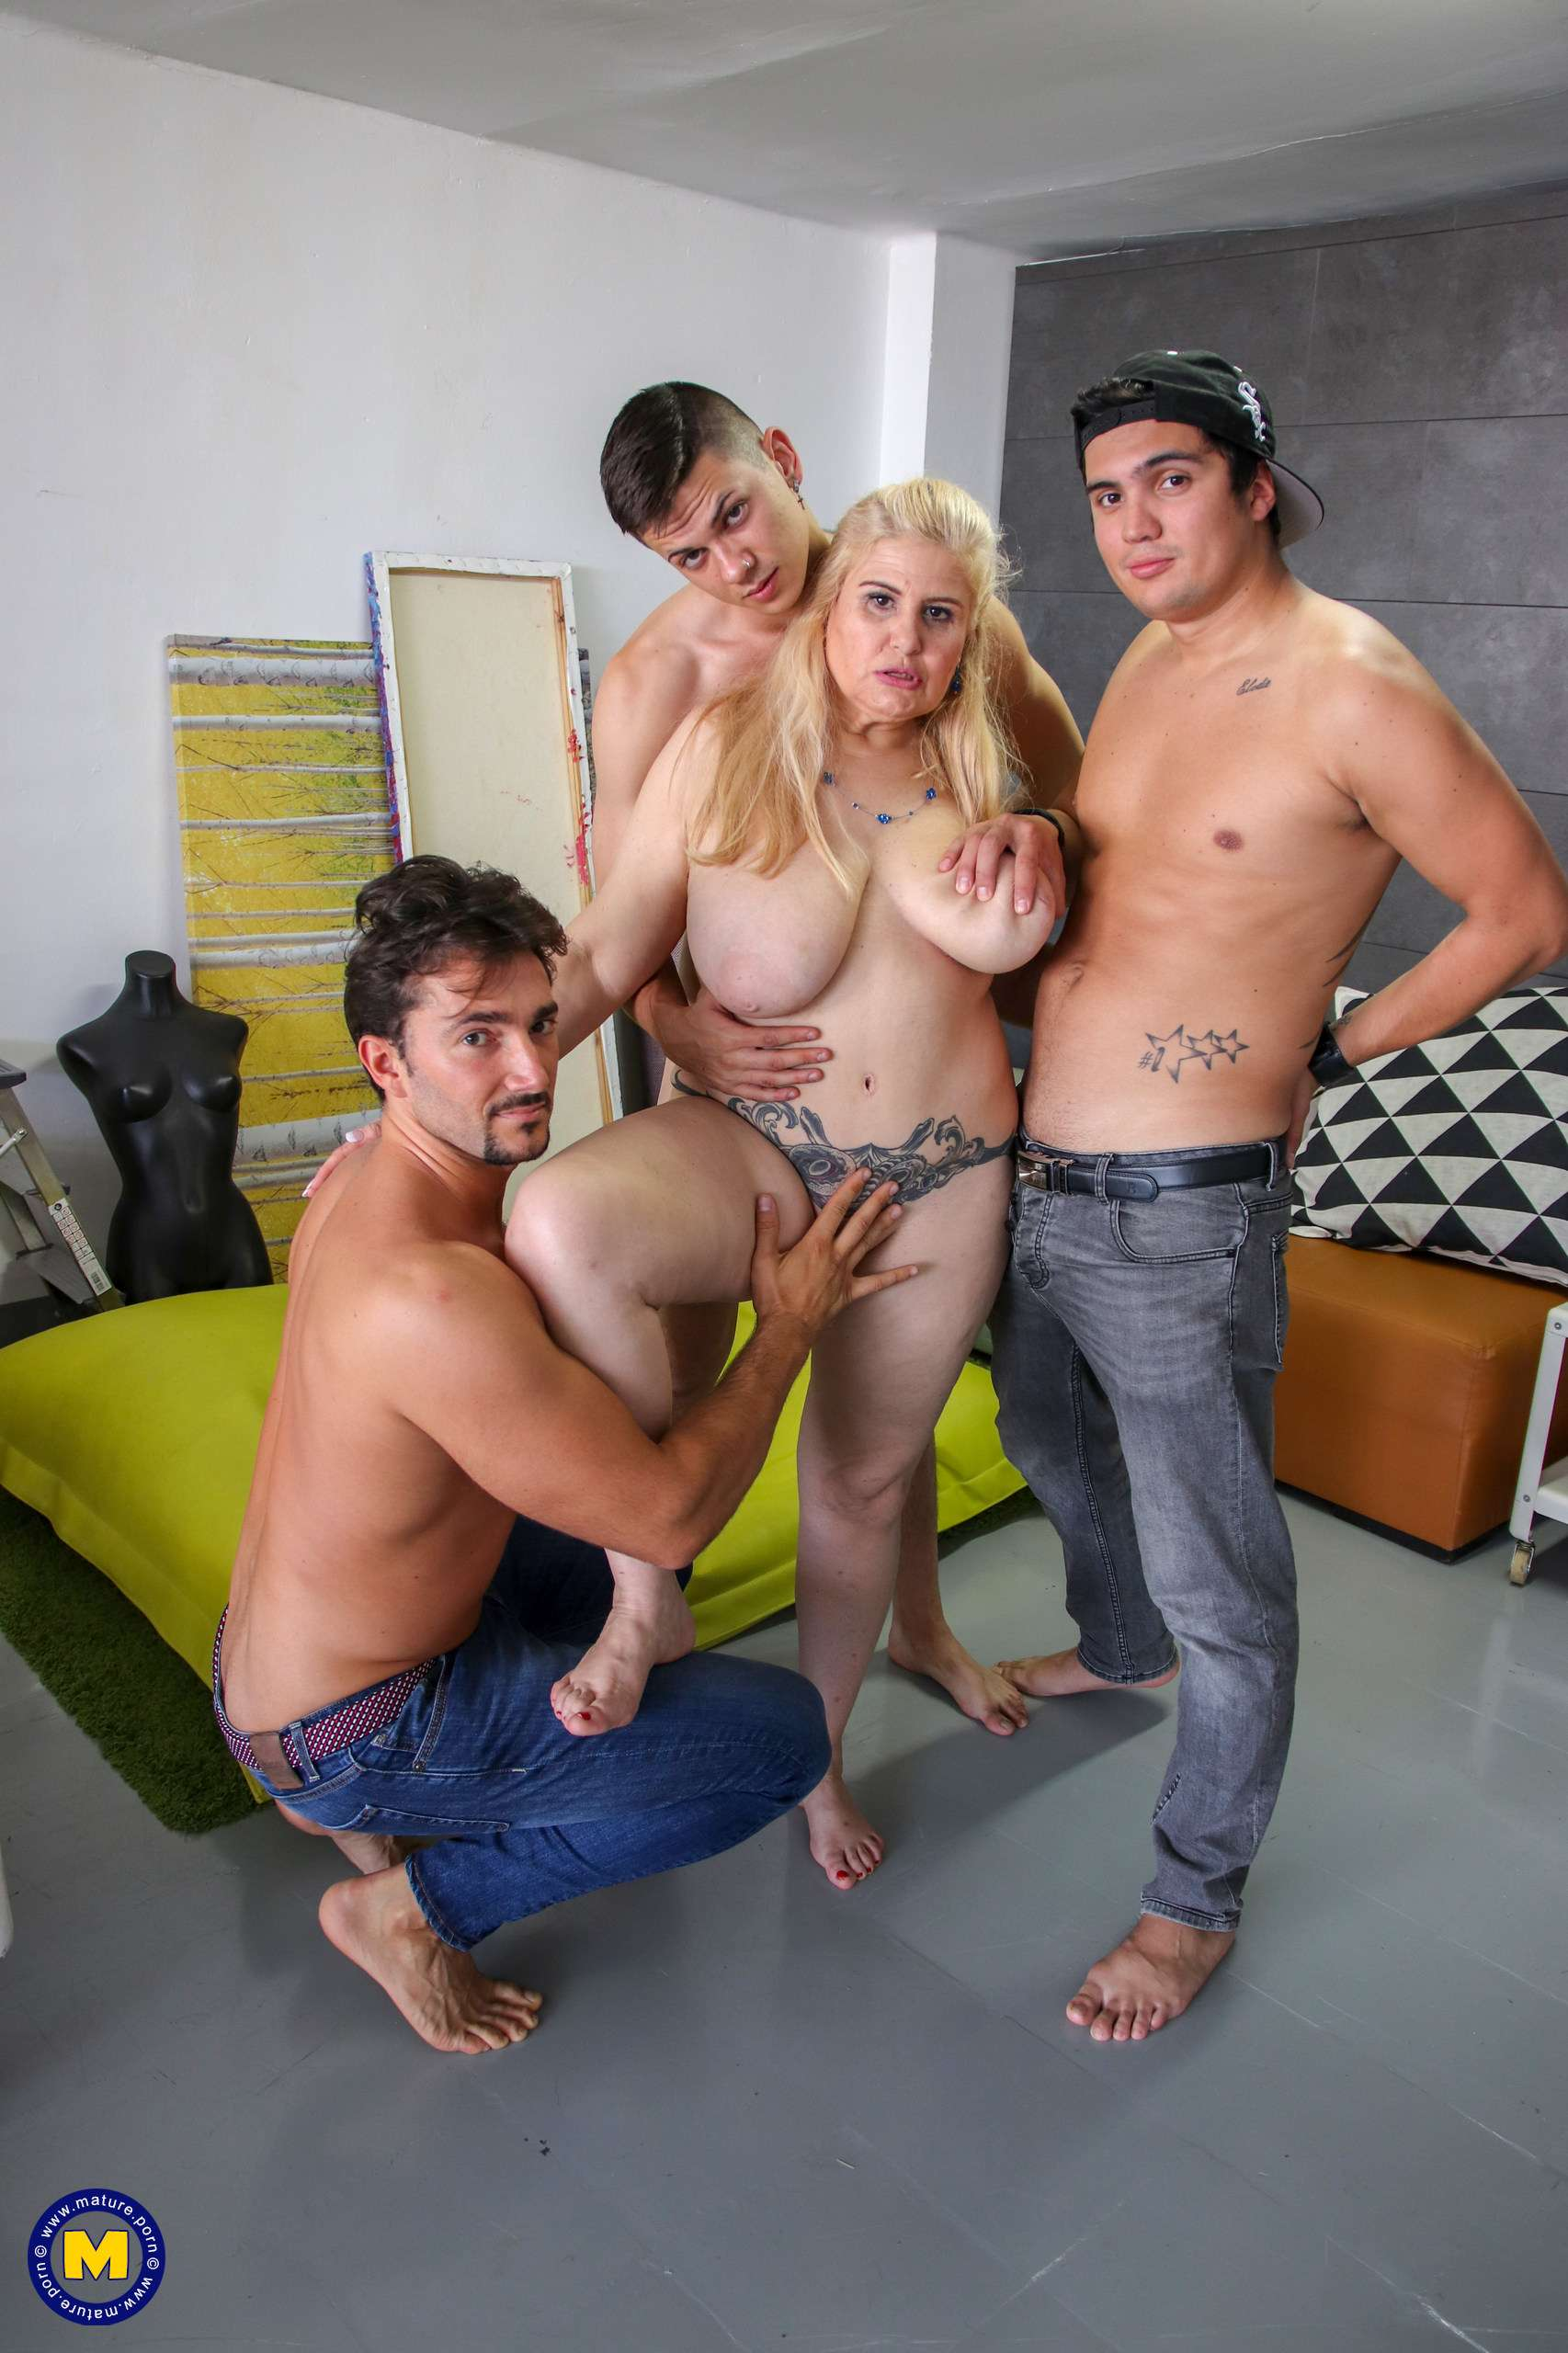 Big breasted Musa Libertina taking on three strapping young lads